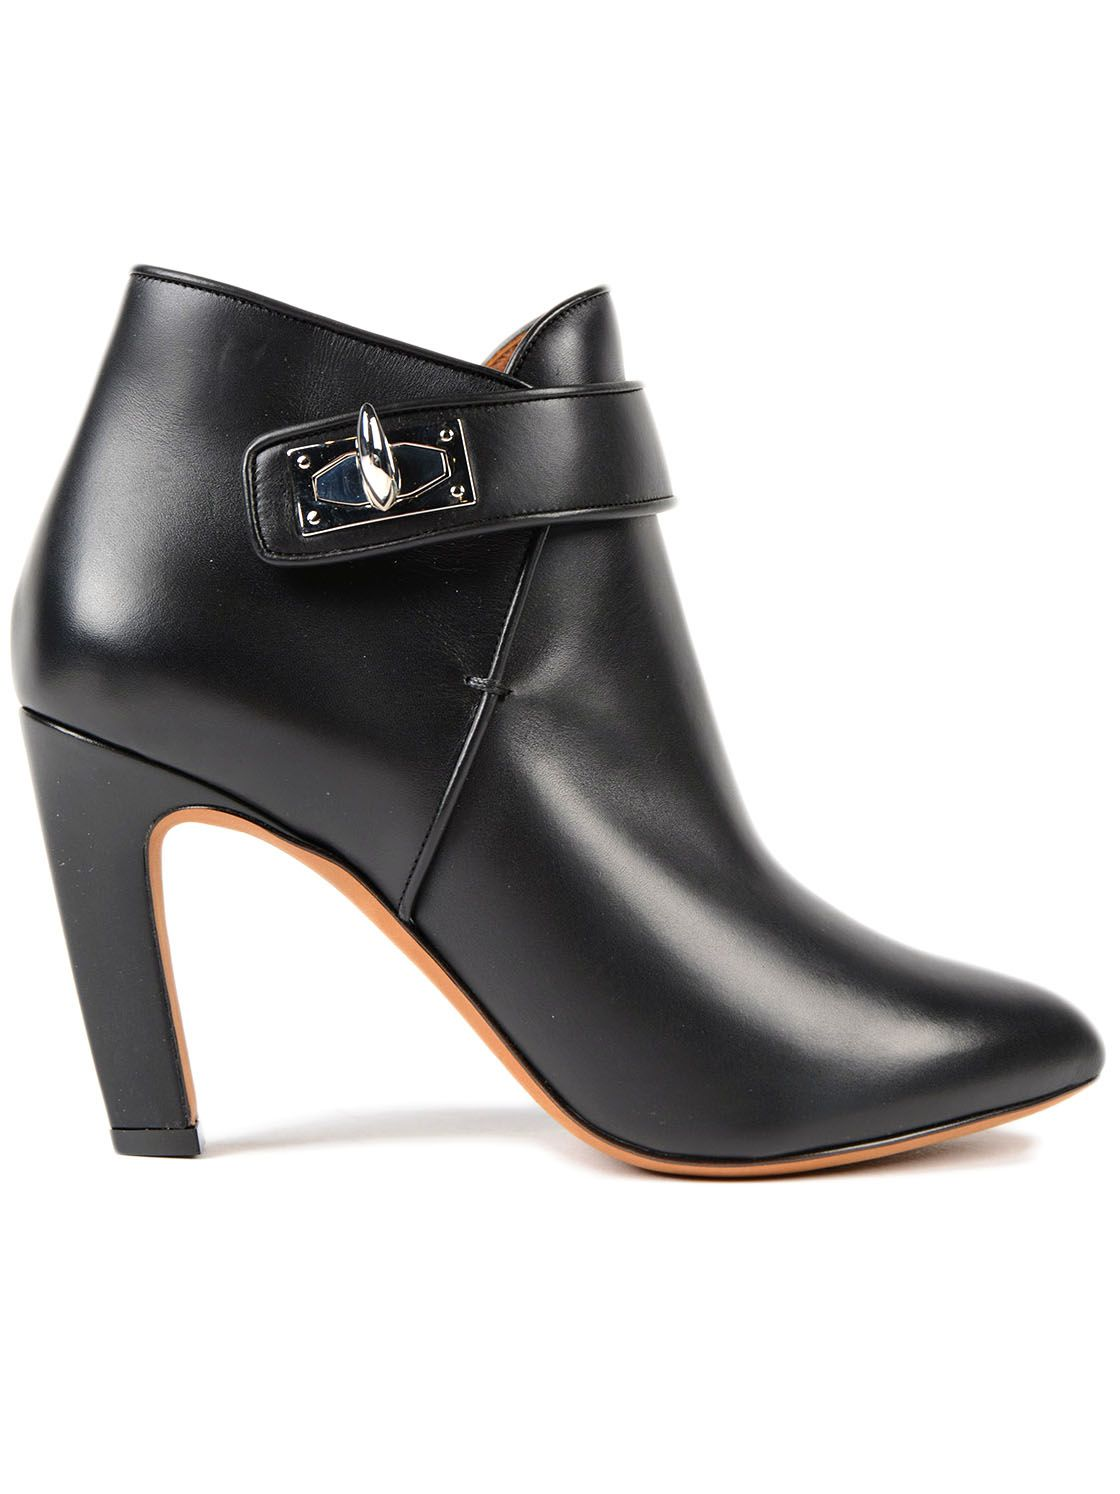 Givenchy Shark Ankle Boots